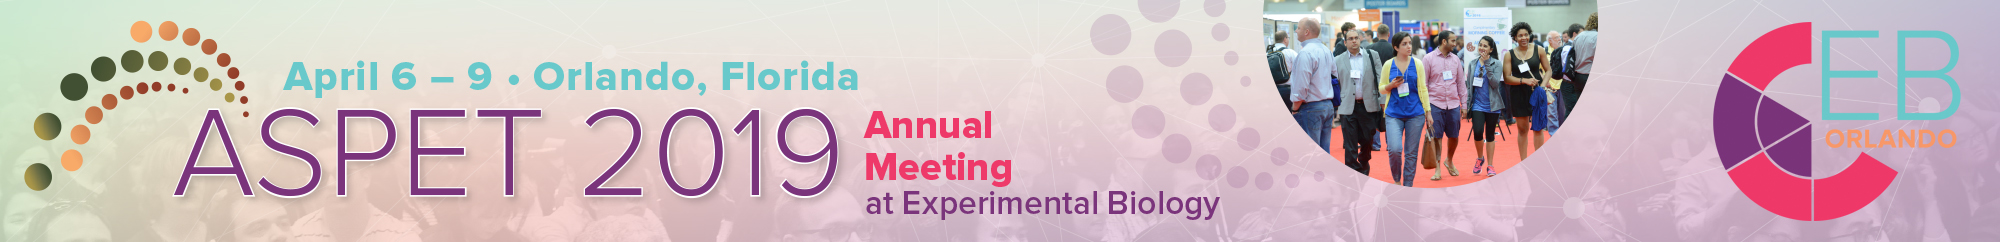 ASPET 2019 Annual Meeting